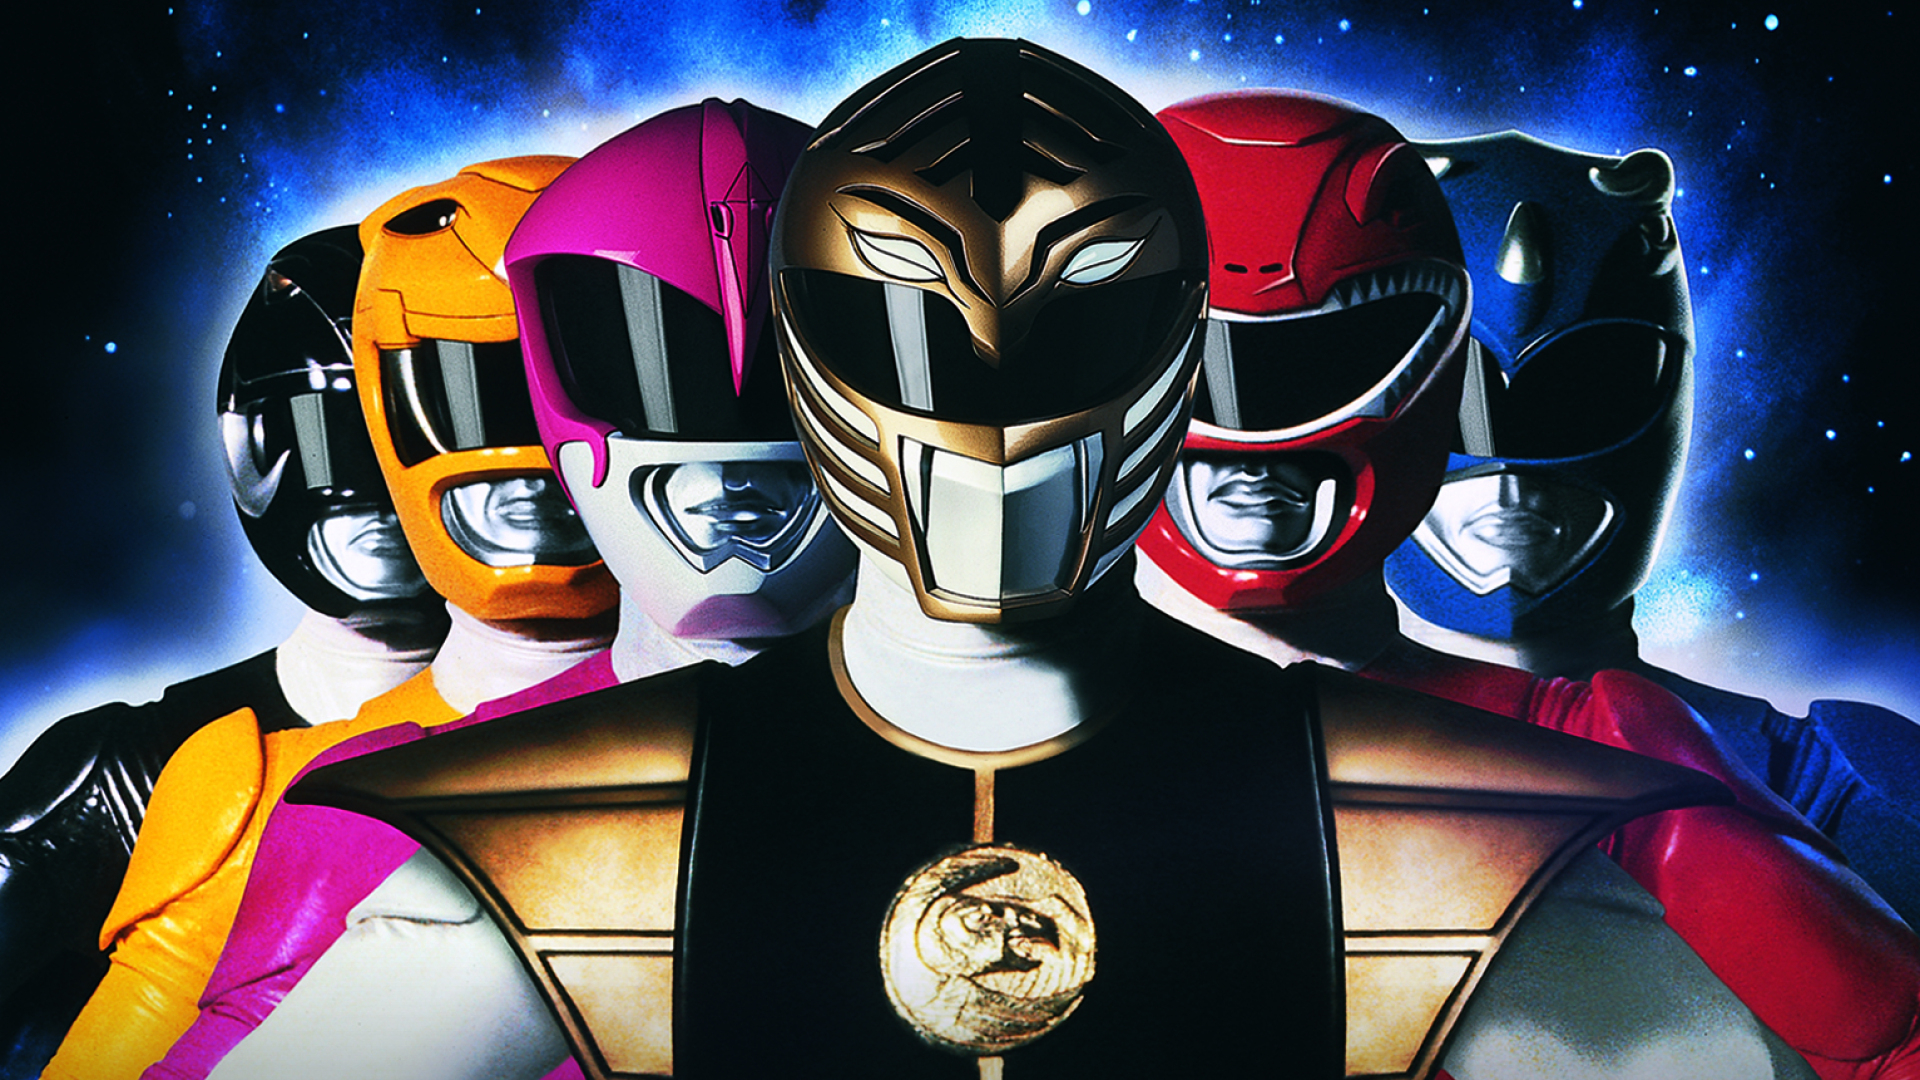 mighty morphin power rangers the movie hd